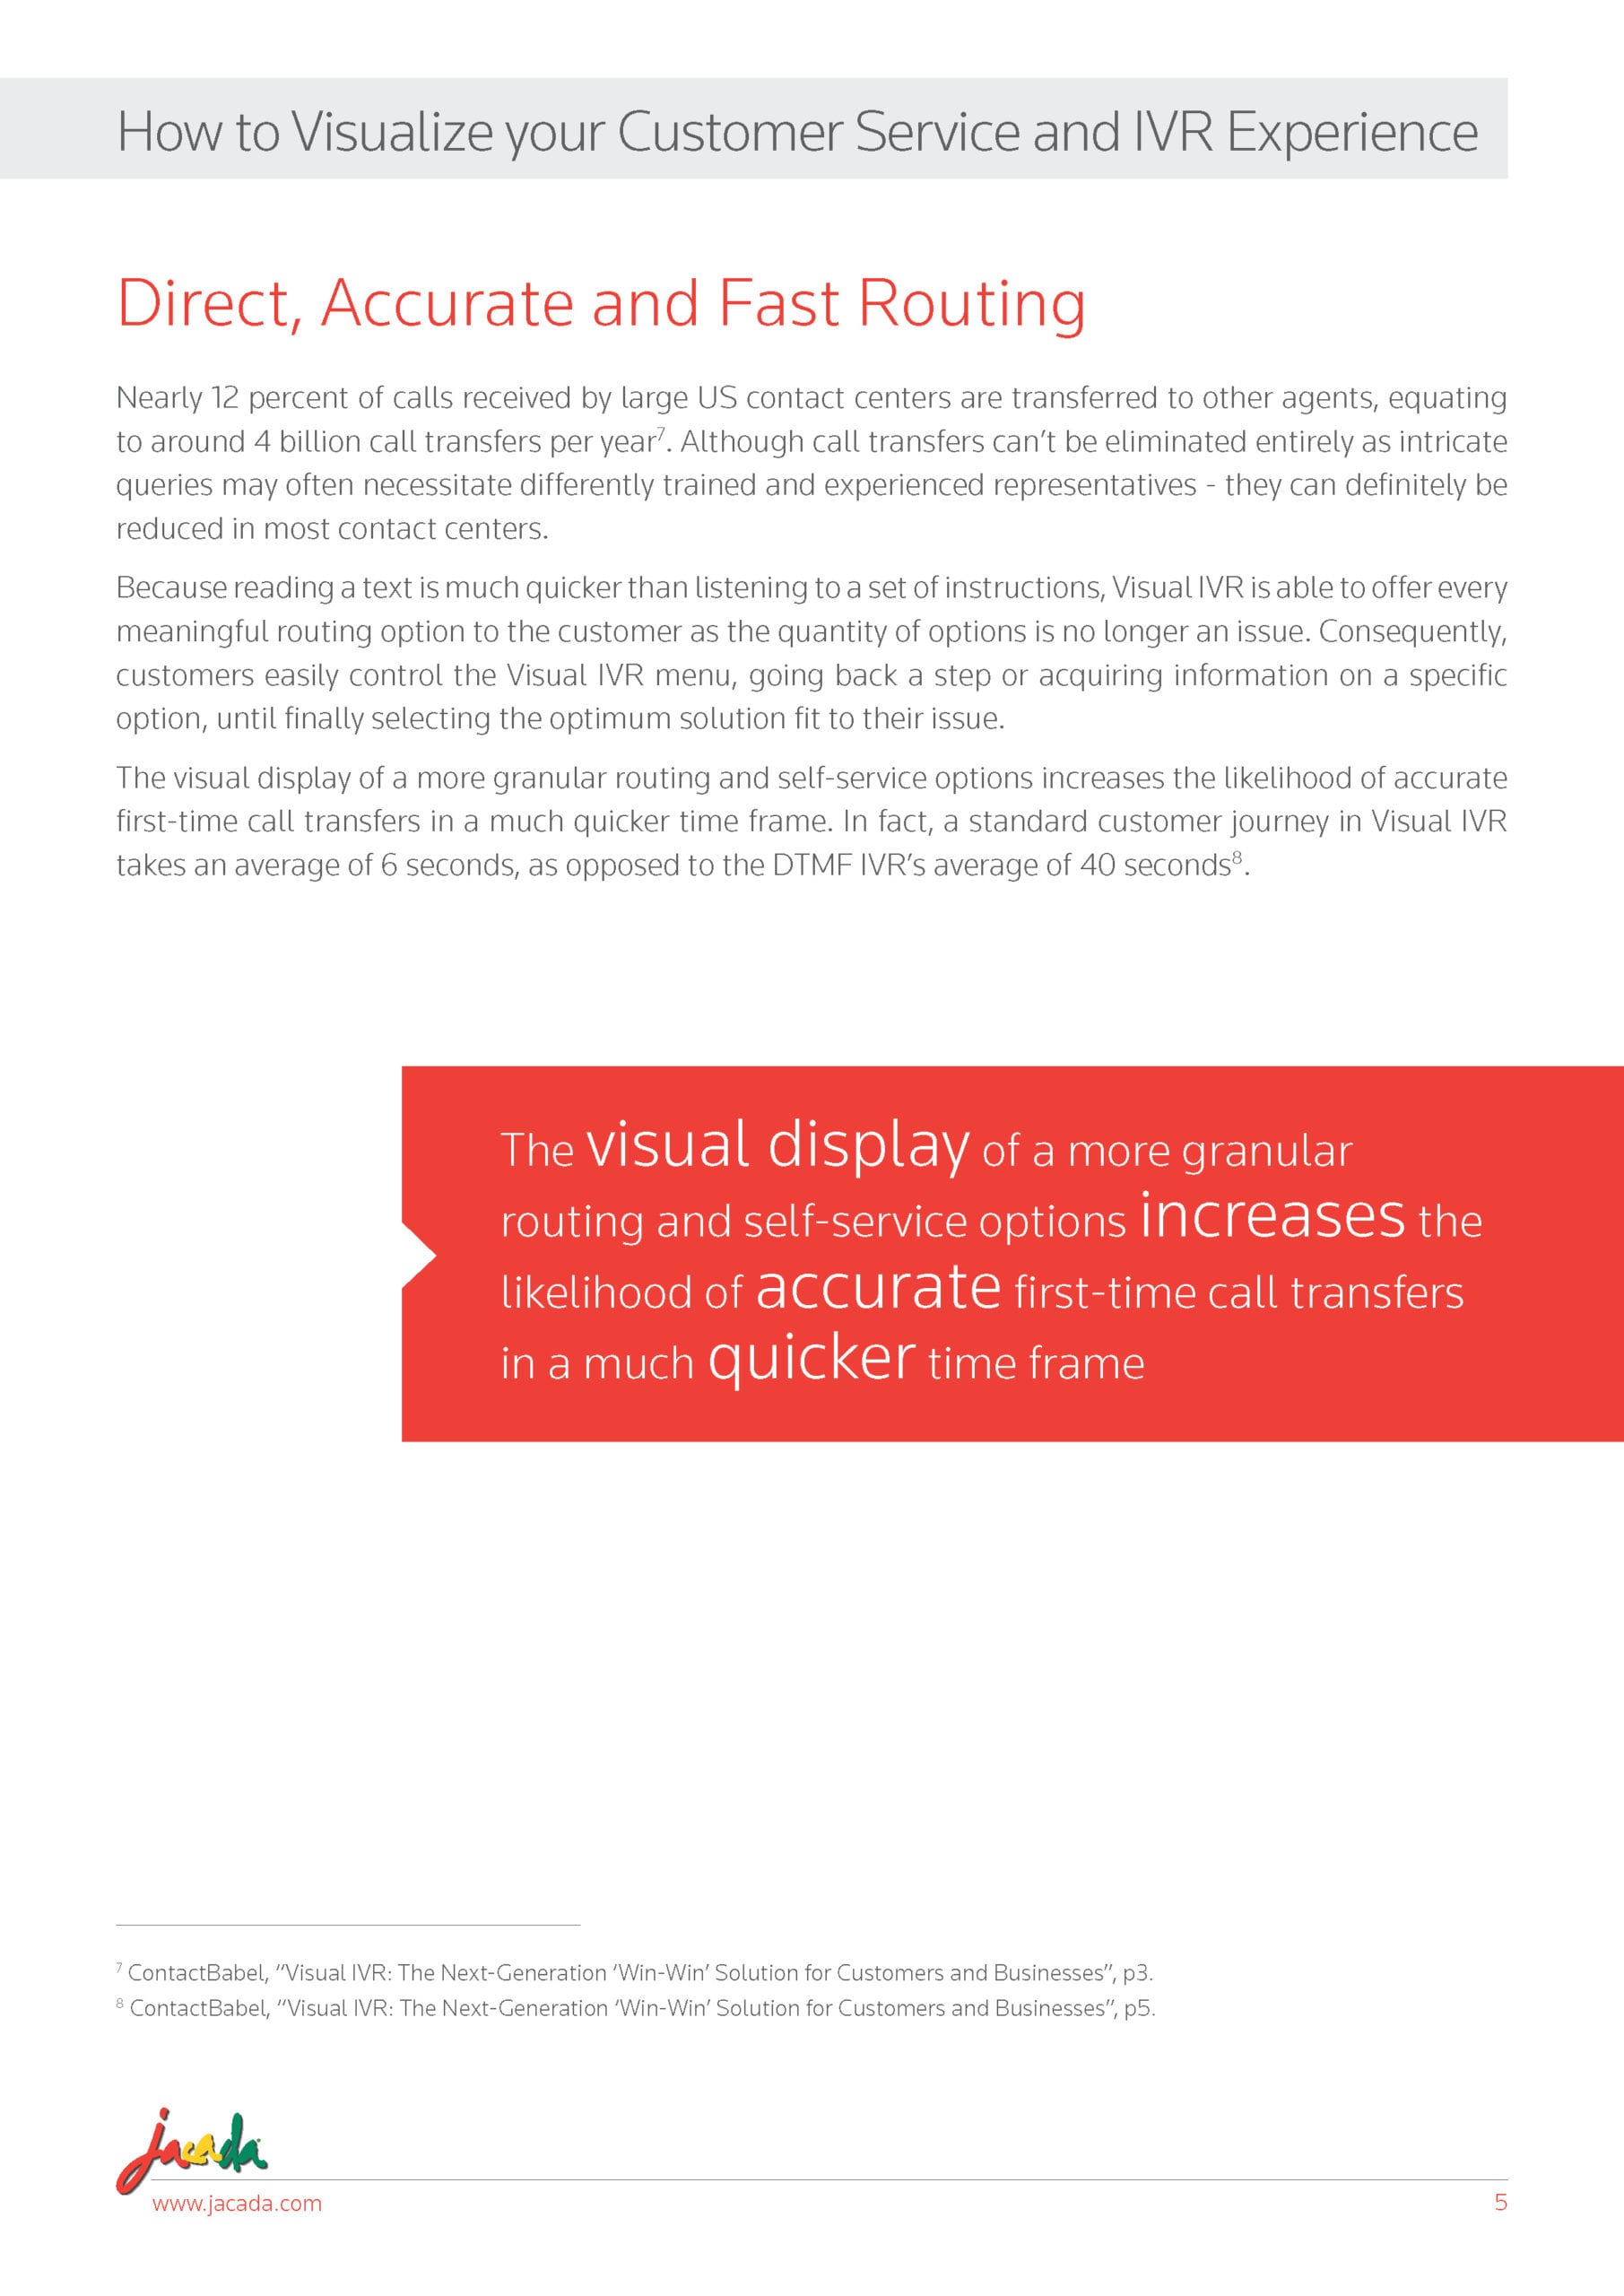 White_Paper_How_to_Visualize_your_customer_service_IVR_experience_Page_11_Page_05a